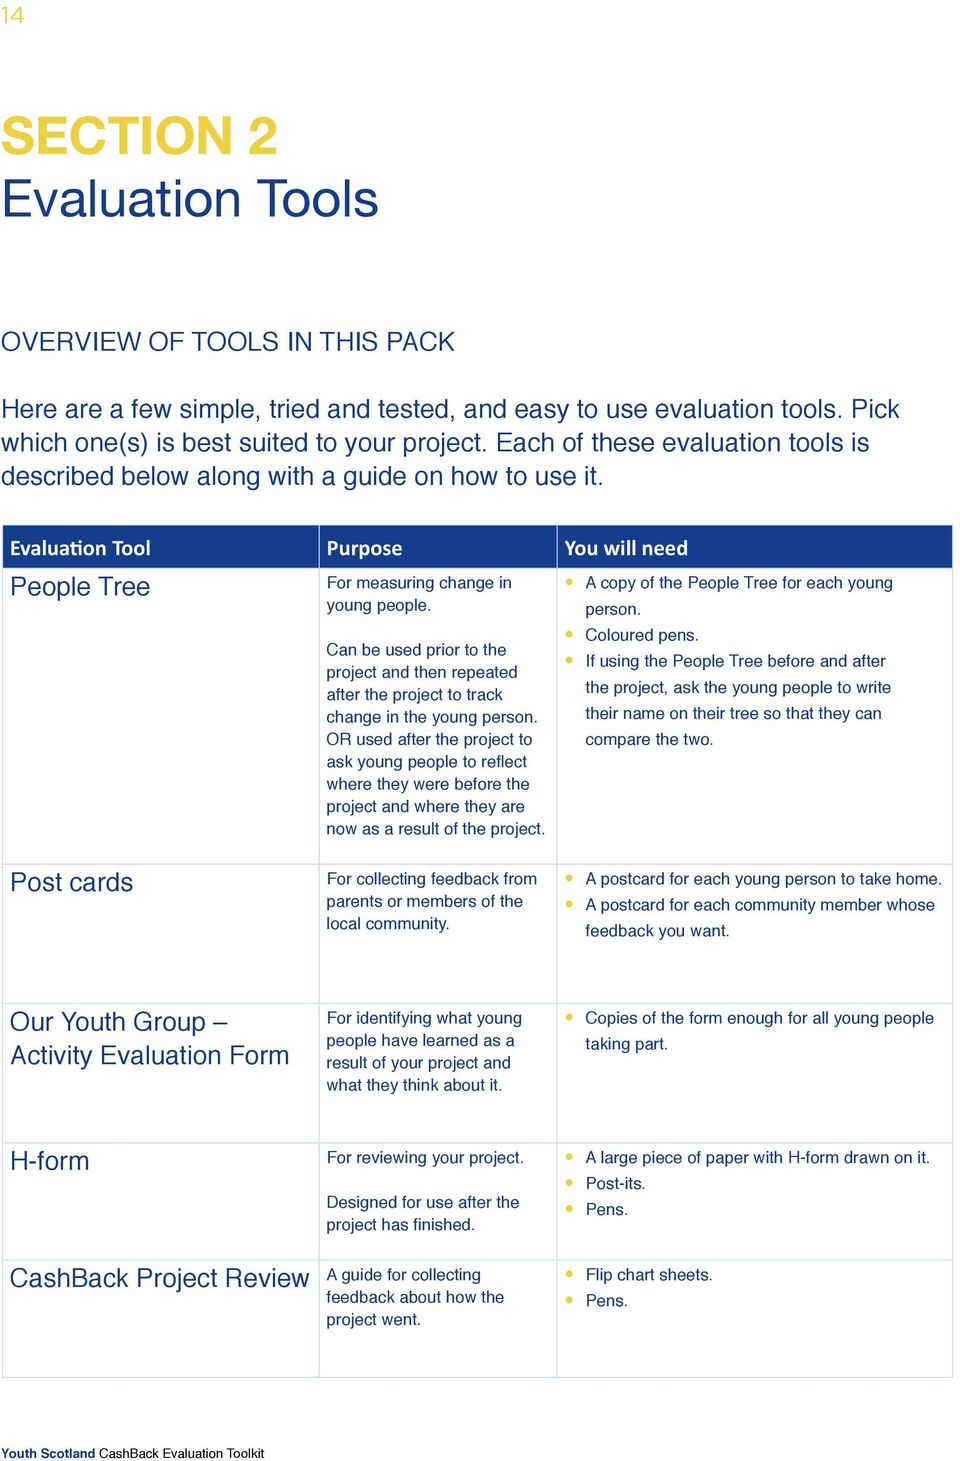 Can be used prior to the project and then repeated after the project to track change in the young person.